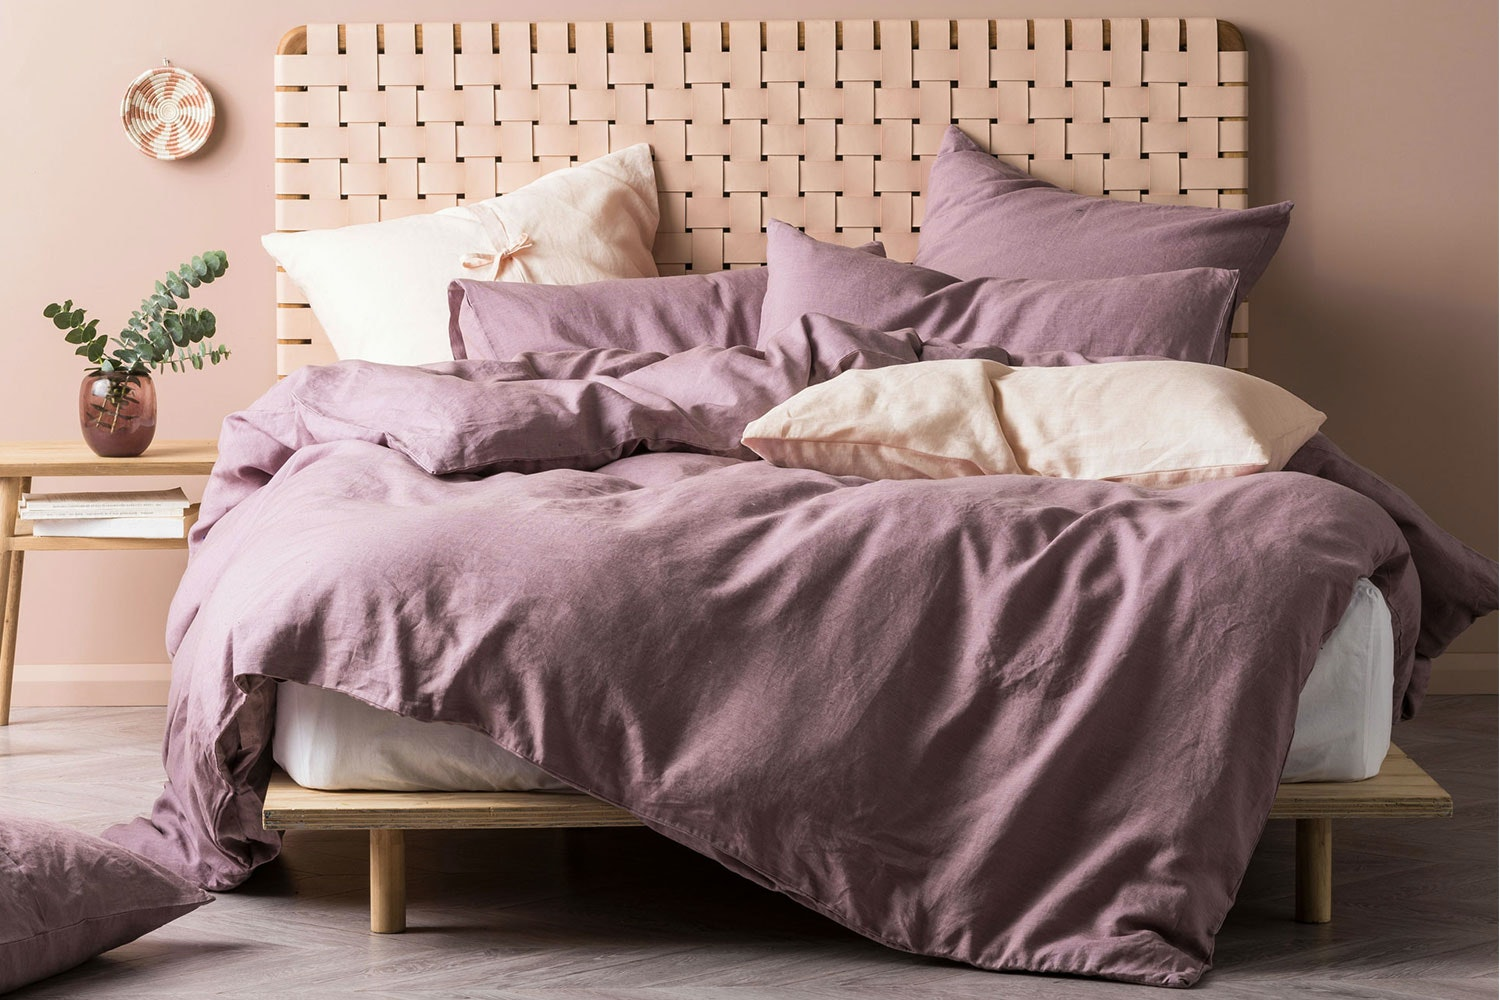 Nimes Elderberry Duvet Cover Set by Savona